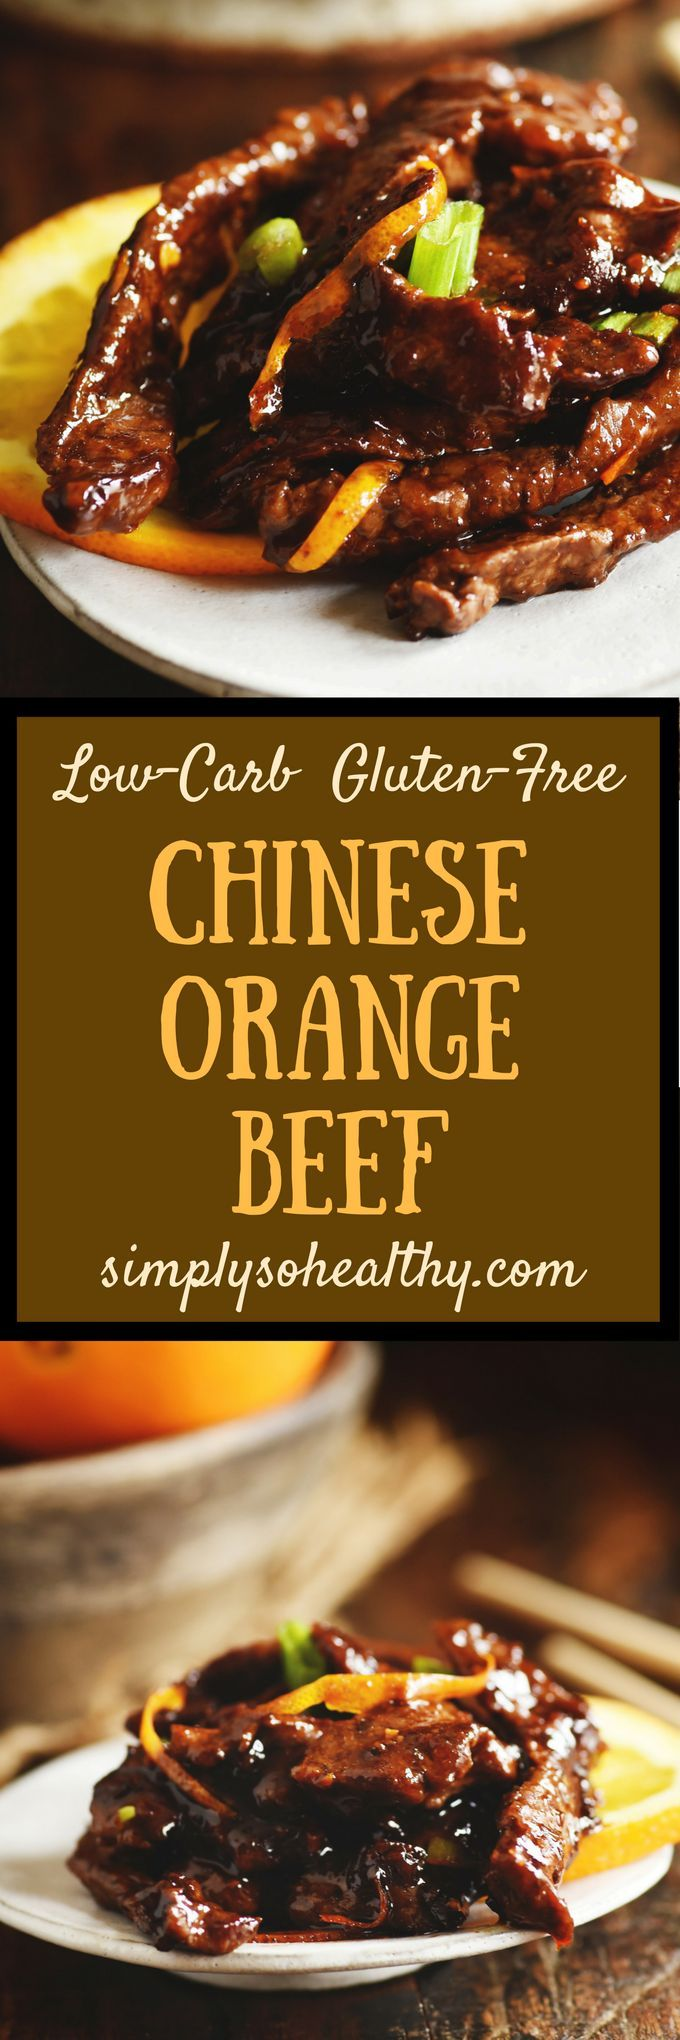 Make take-out in your own kitchen with our Orange Beef – Low-Carb Chinese Food Recipe! Unlike most take-out, this recipe can work for low-carb, keto, Atkins, diabetic, gluten-free, grain-free, dairy-free and Banting diets.  #lowcarbrecipe